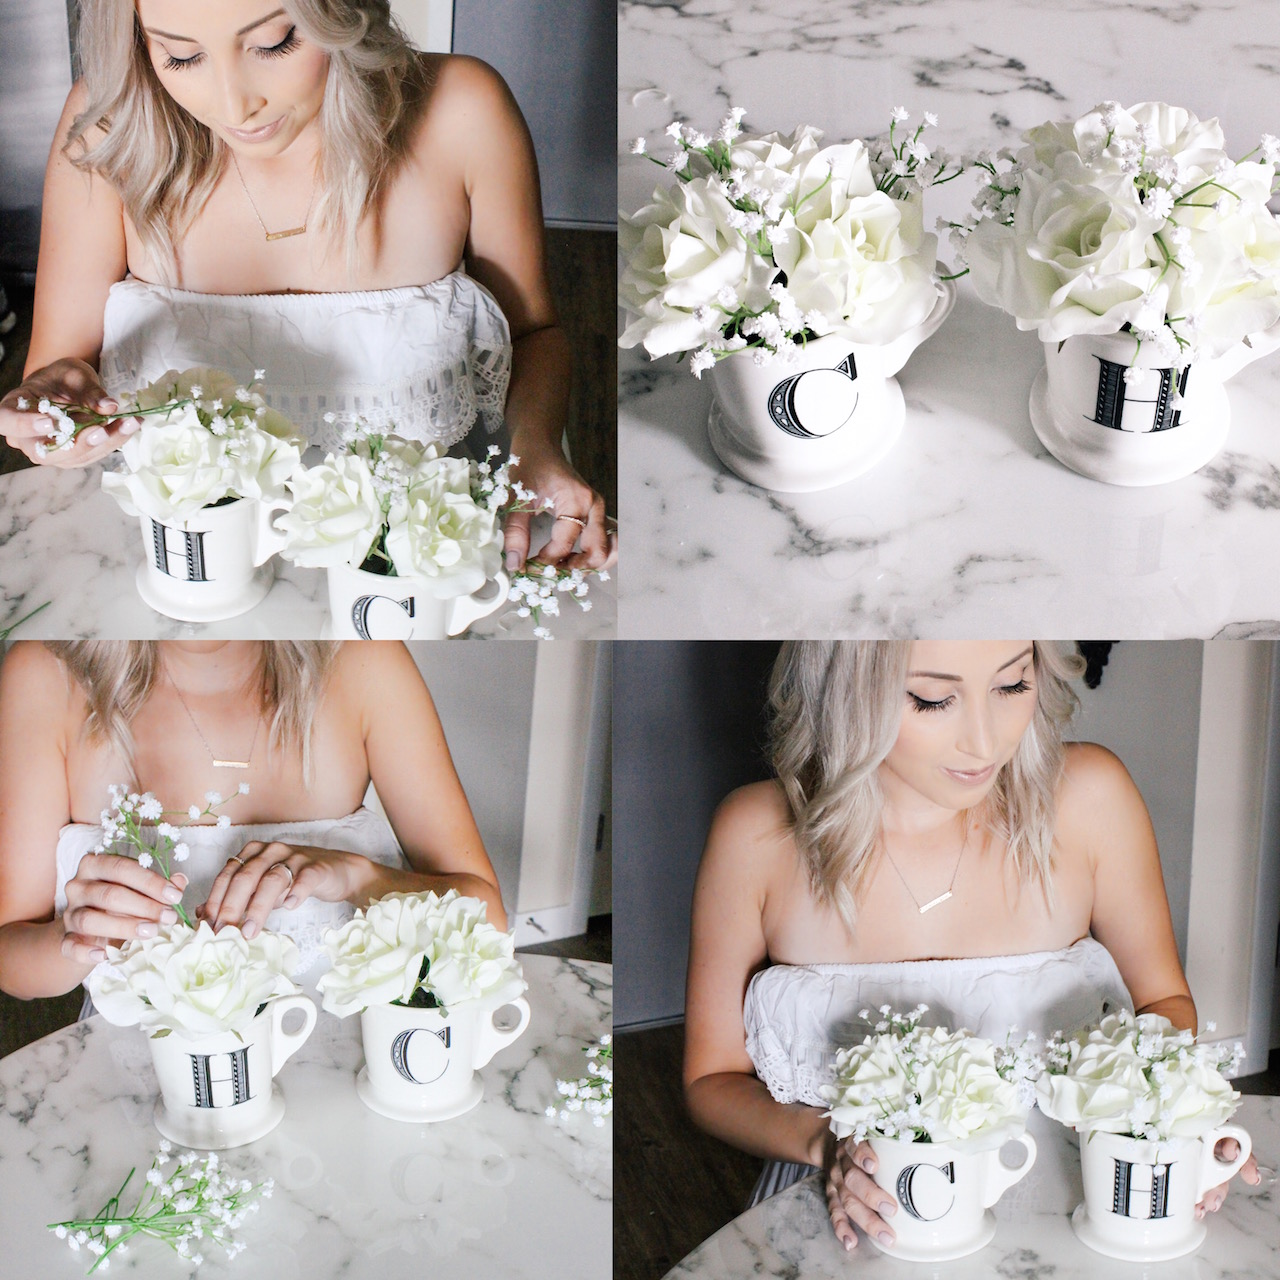 Turning coffee cups into decor with flowers | StyledByBlondie.com